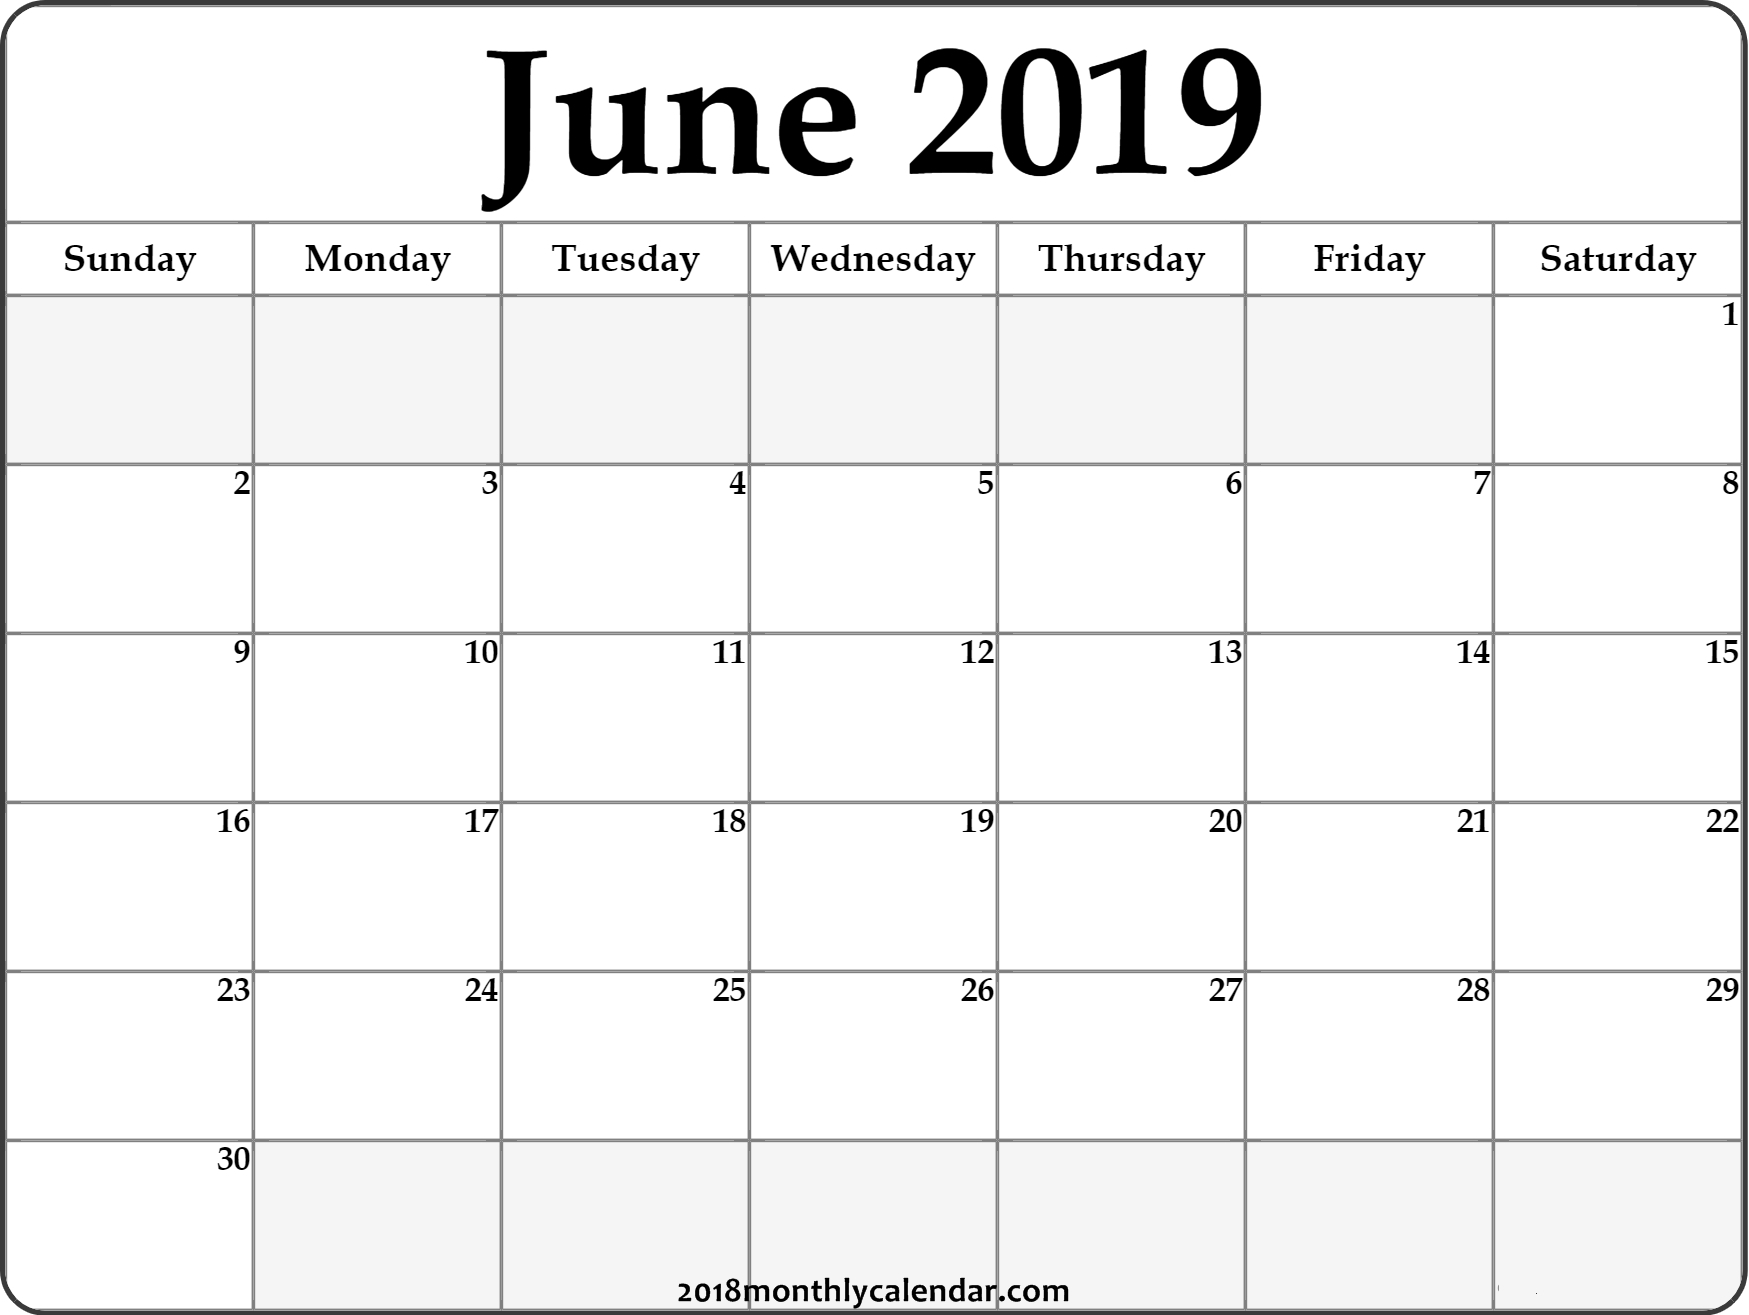 Free Calendars To Print Without Downloading - Calendar Free Online Printable Calendar Without Downloading